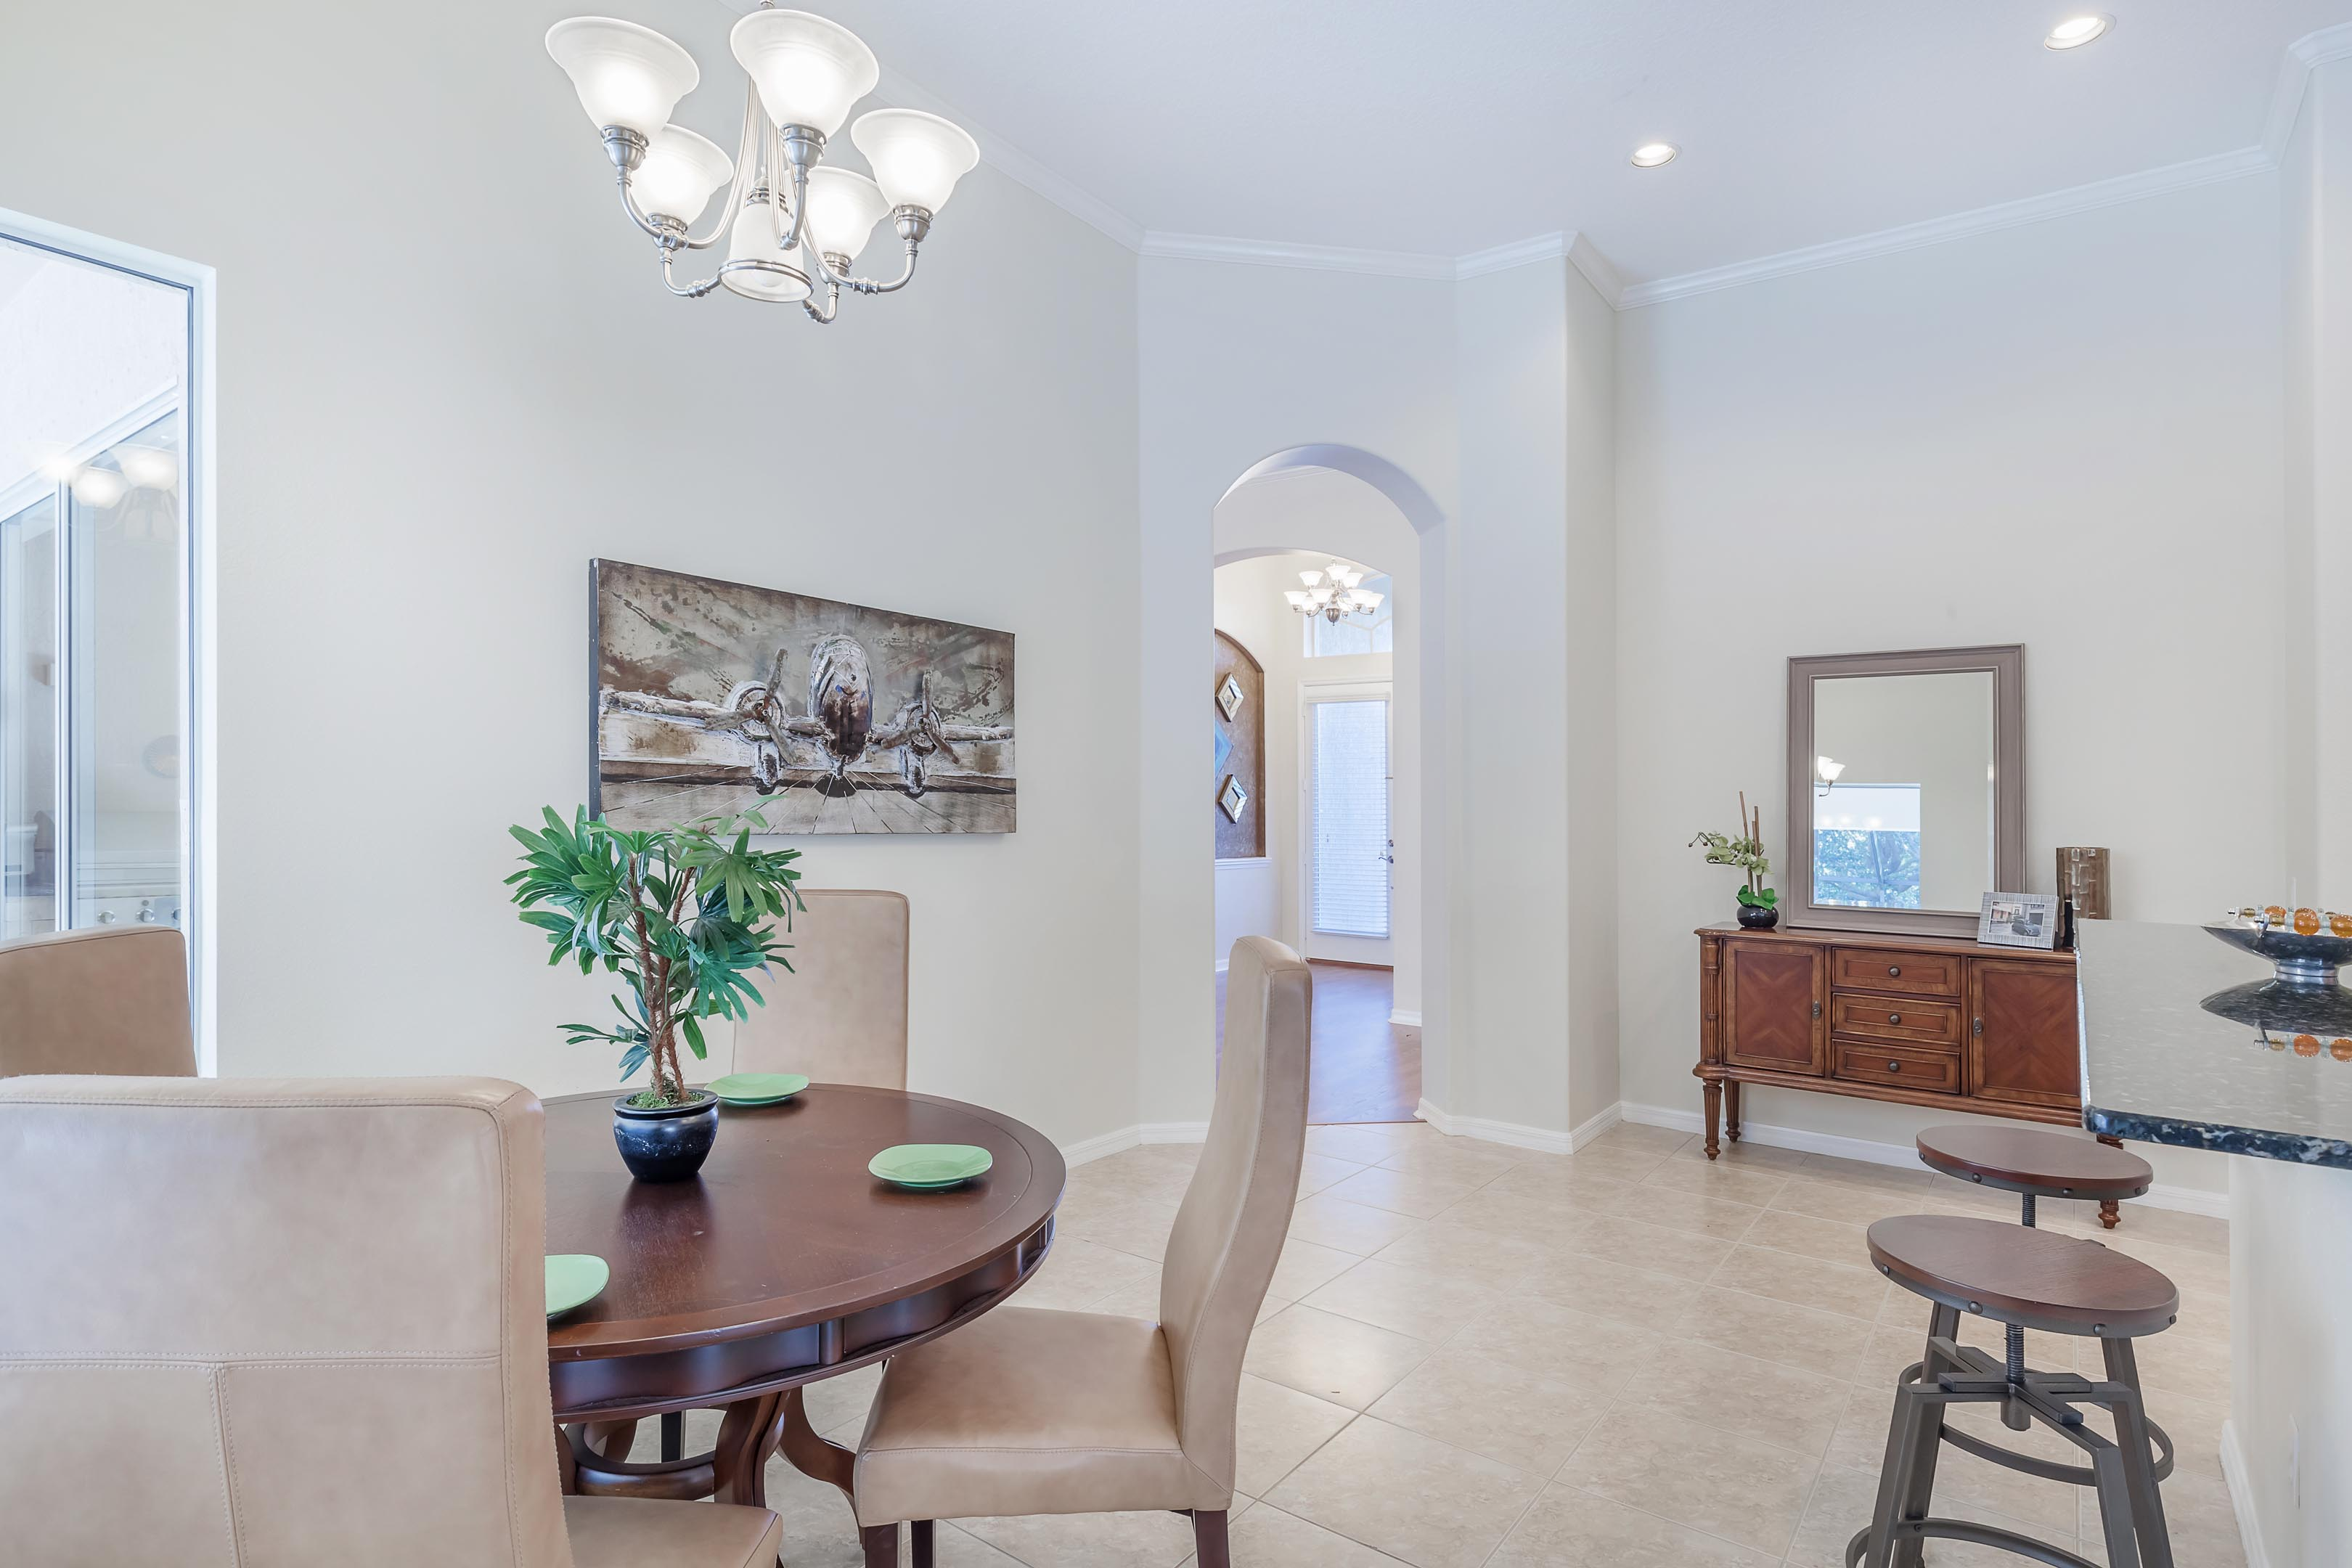 Best of 2017 - Home Staging Tampa Bay | Cardinal Designs